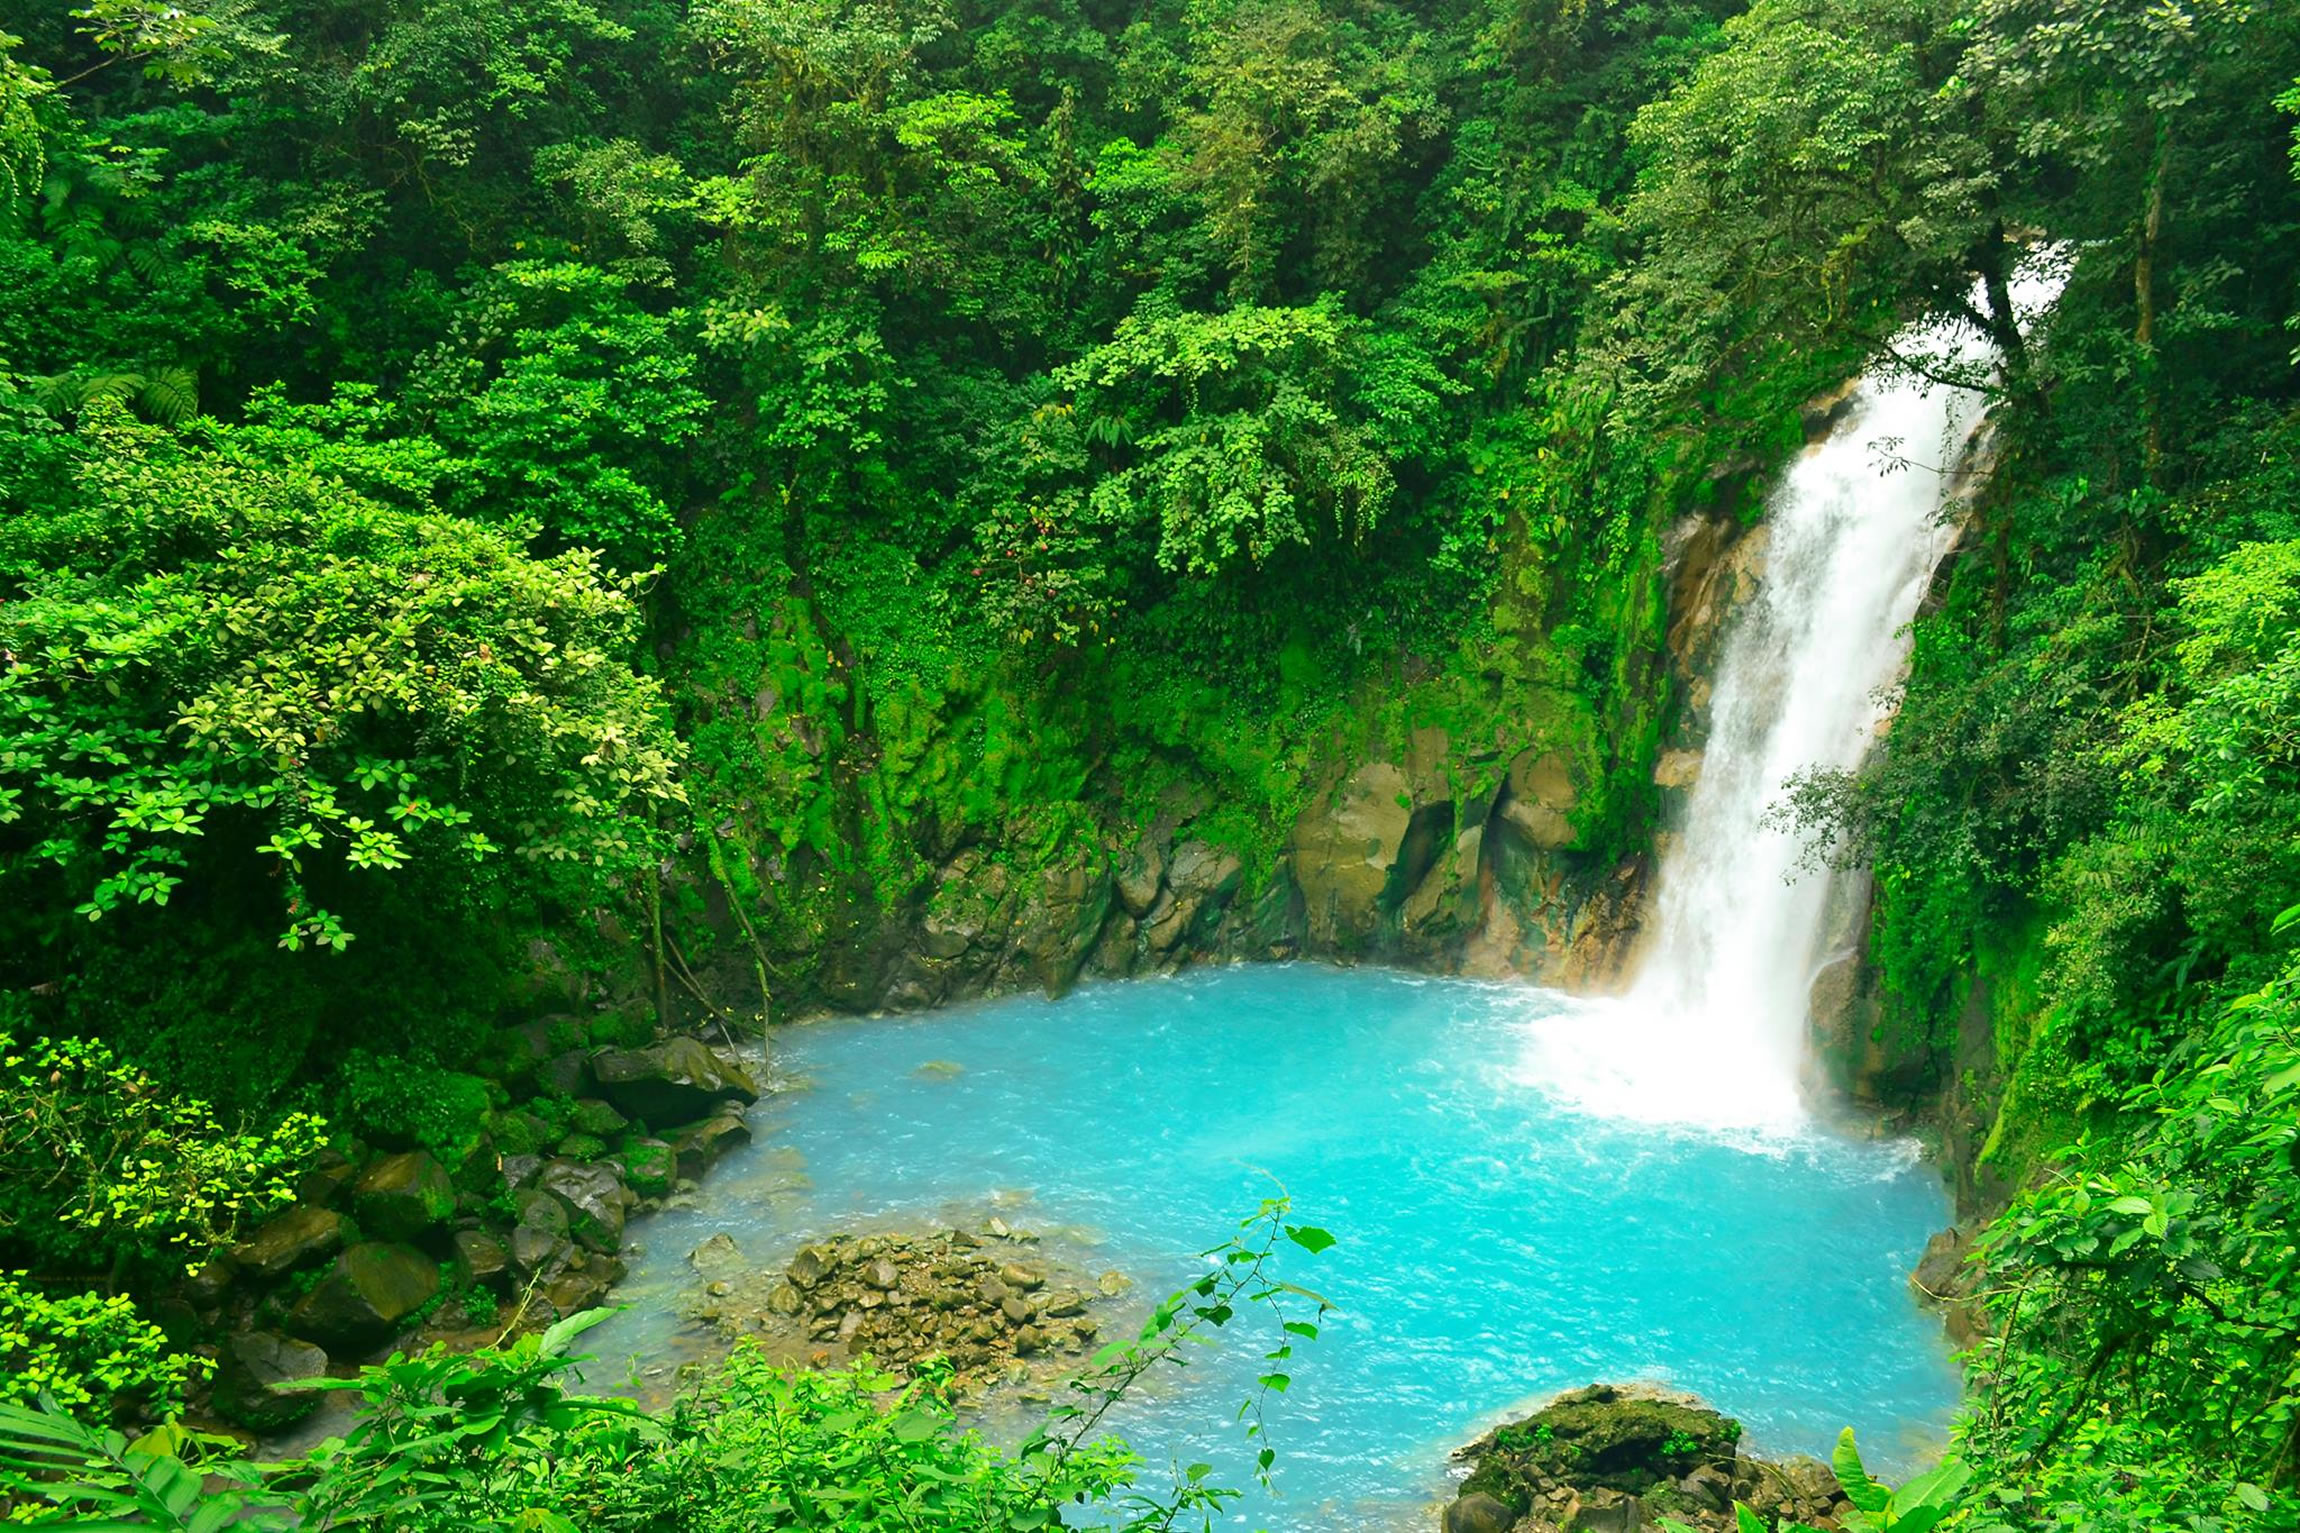 Costa-Rica-Holiday-Tours-Rio-Celeste-Hideaway-Waterfall